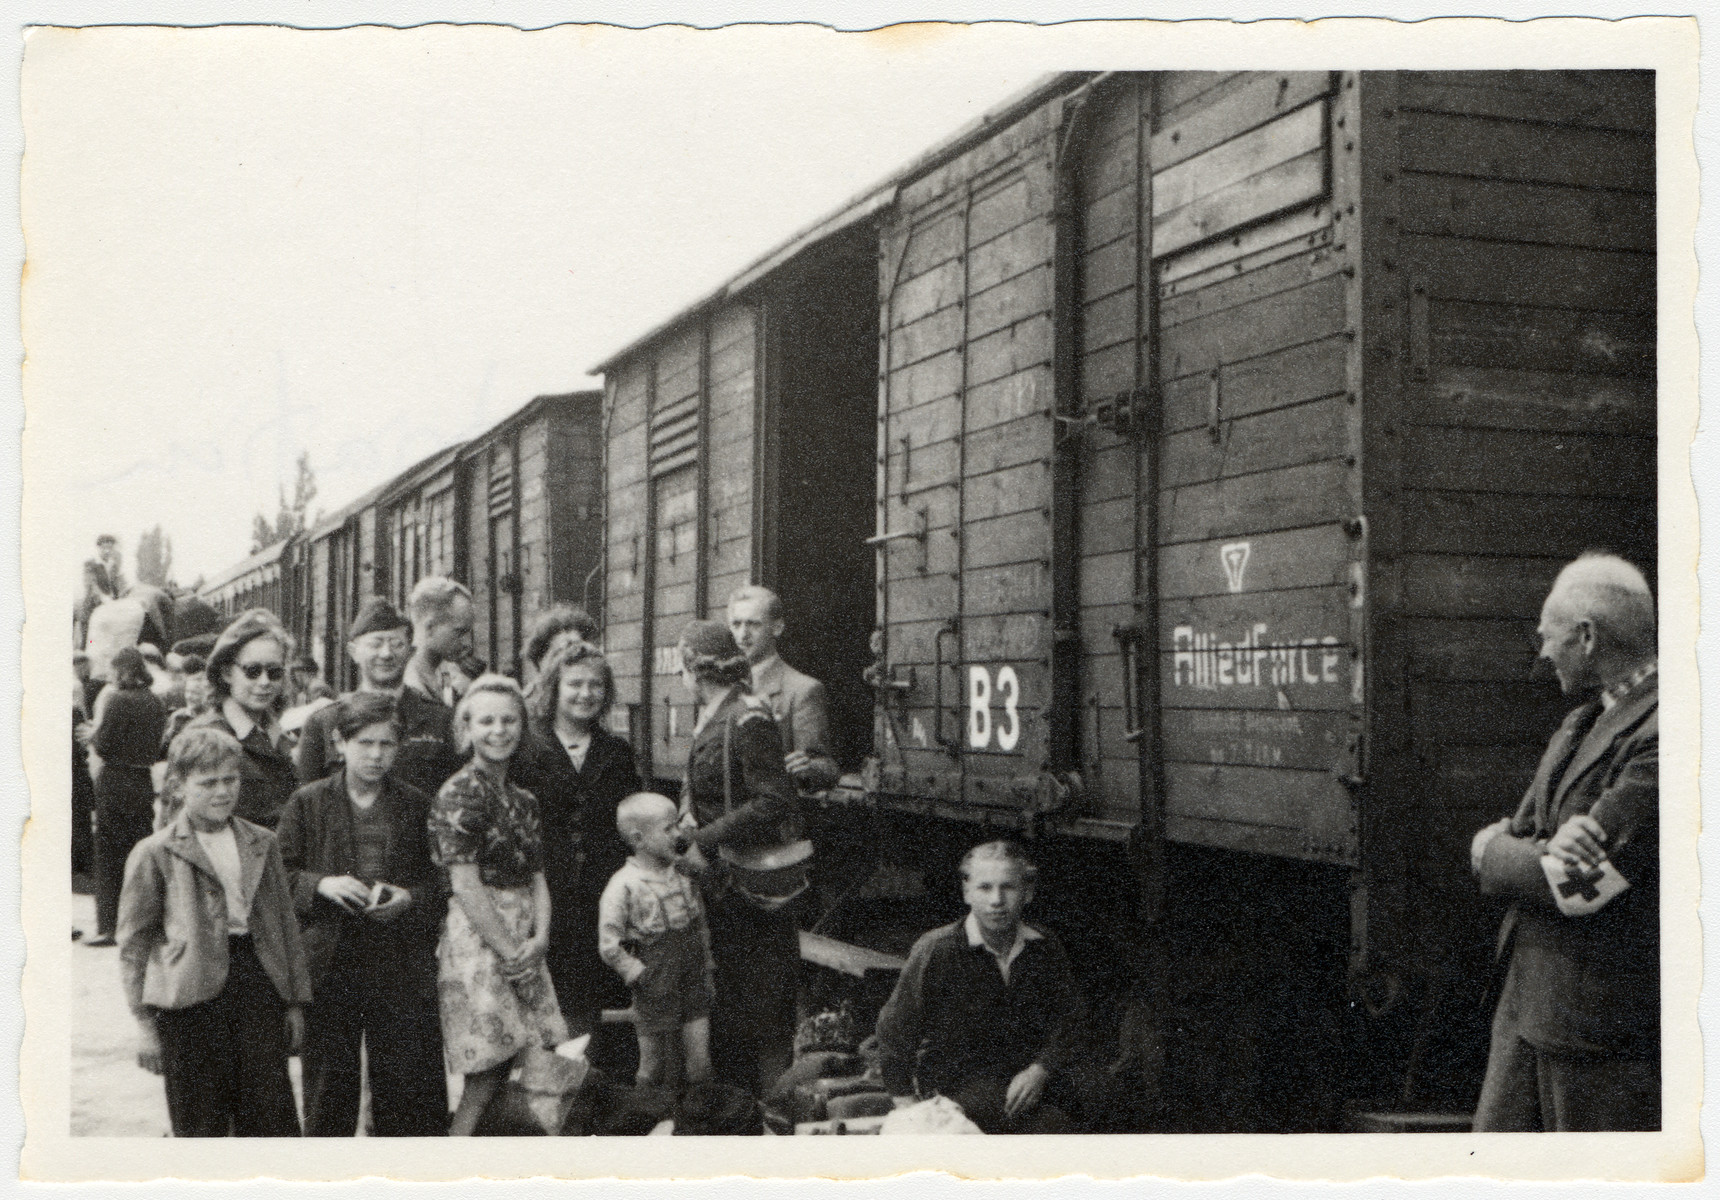 UNRRA director Mordecai Schwartz accompanies displaced persons awaiting repatriation to a waiting train.